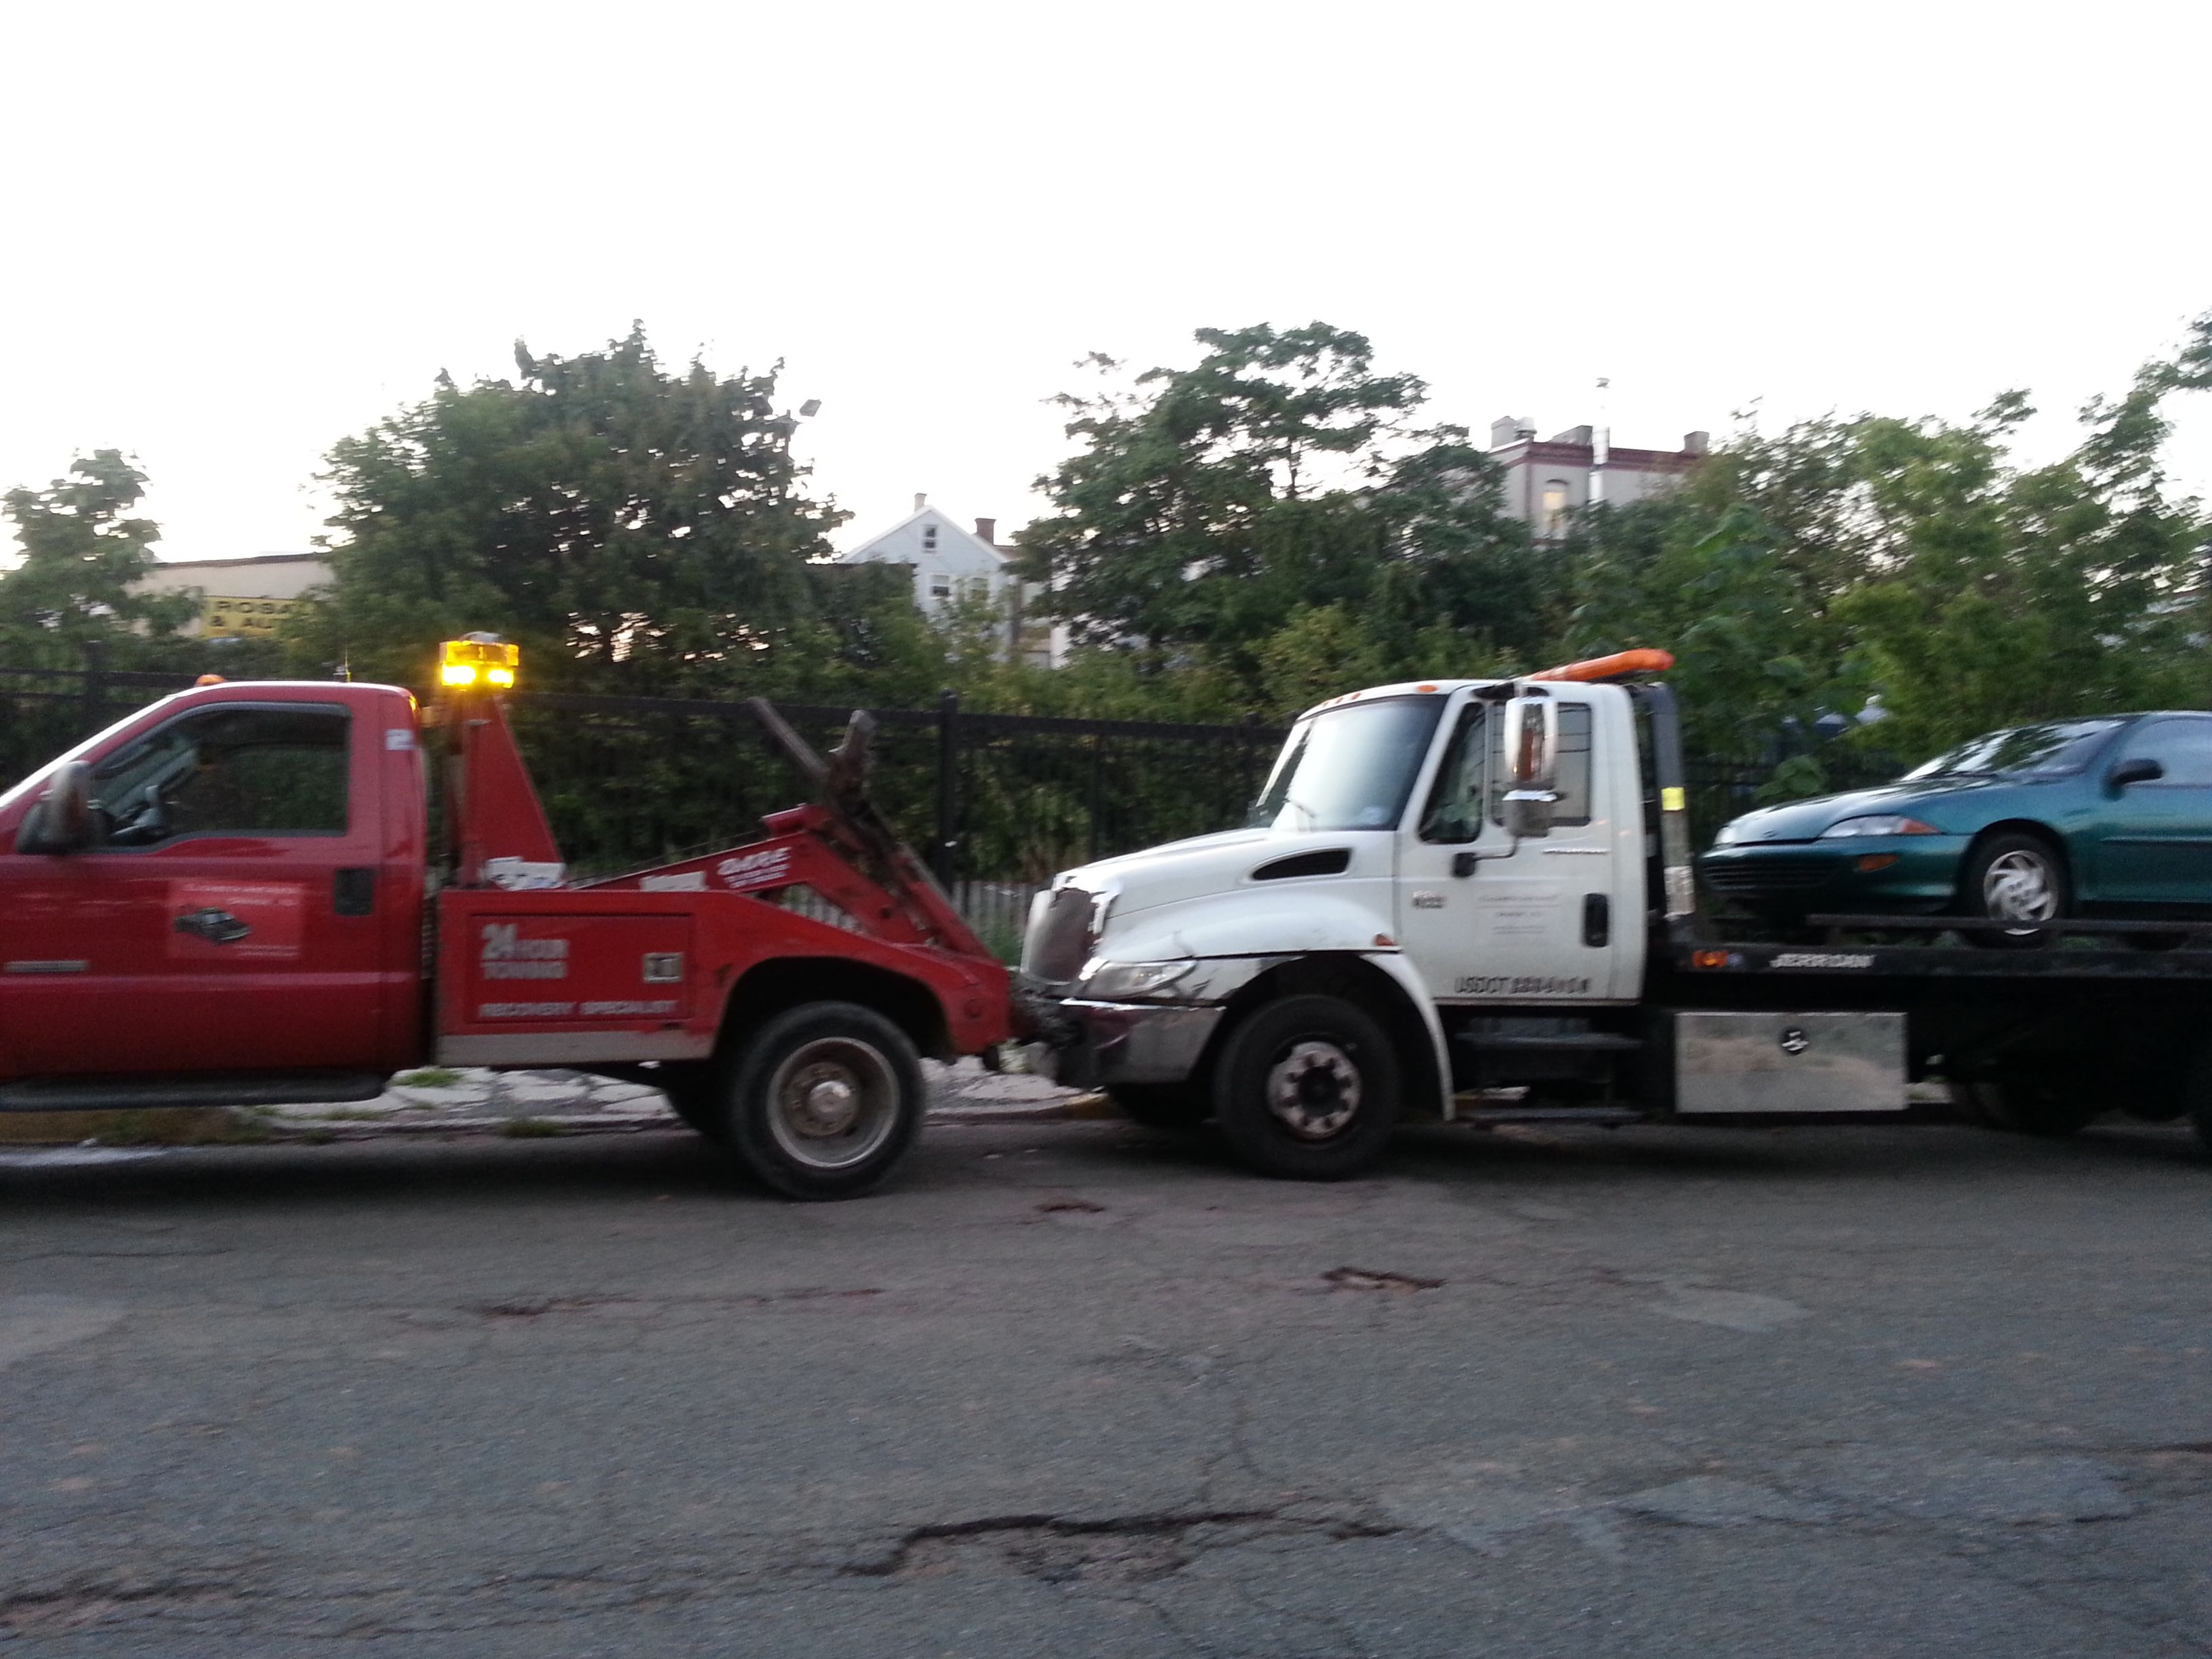 Pin of out tow trucks towing a junk car away. | Junk Car Removal ...